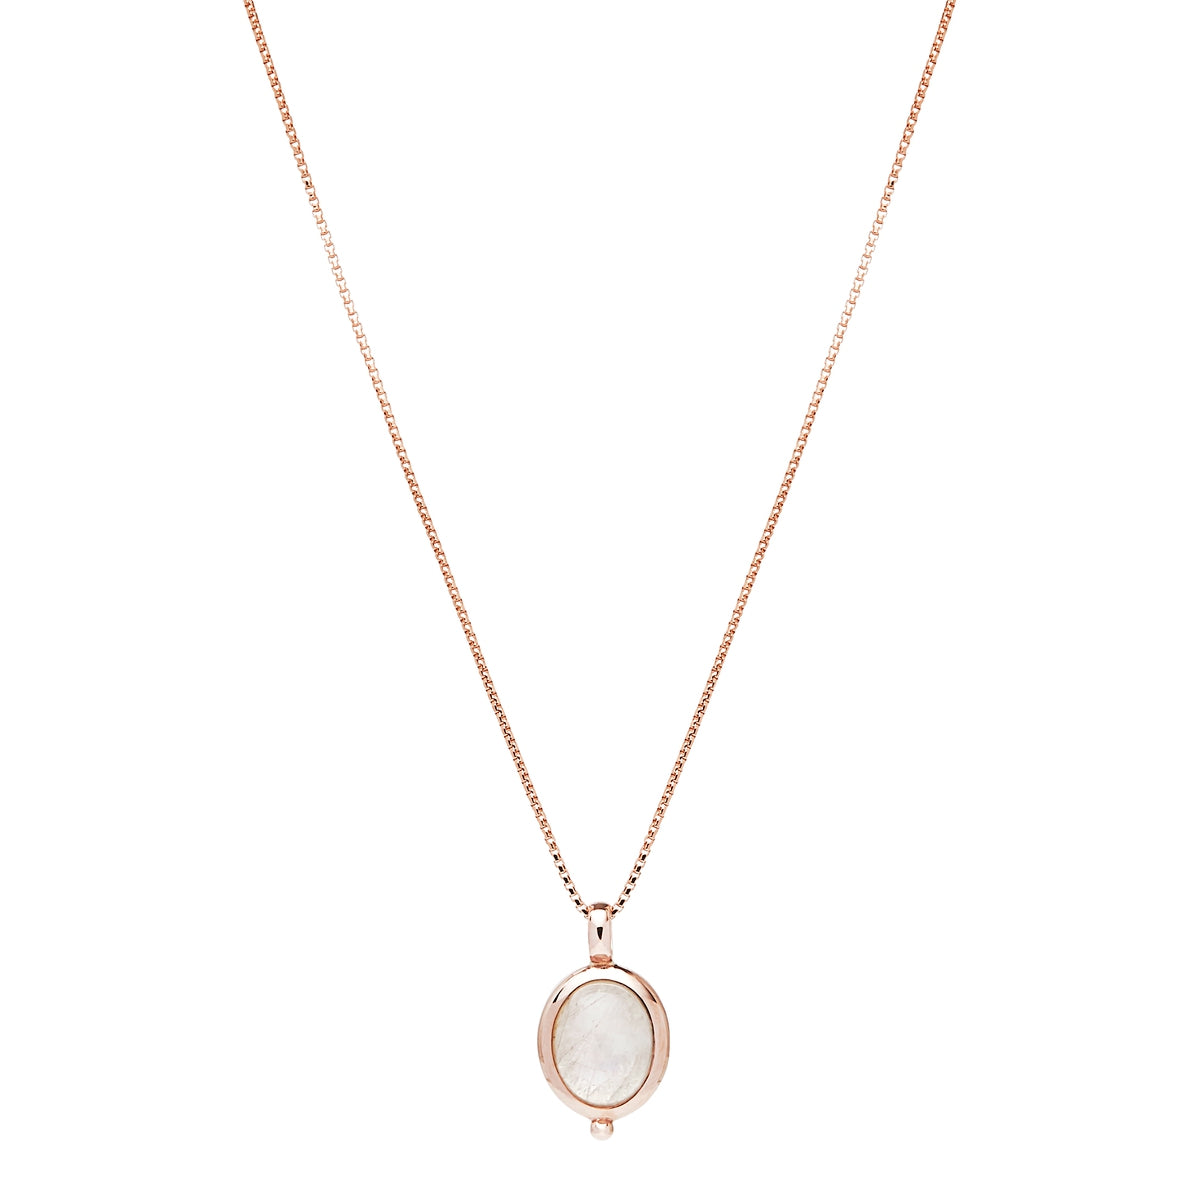 Justinia Necklace Moonstone